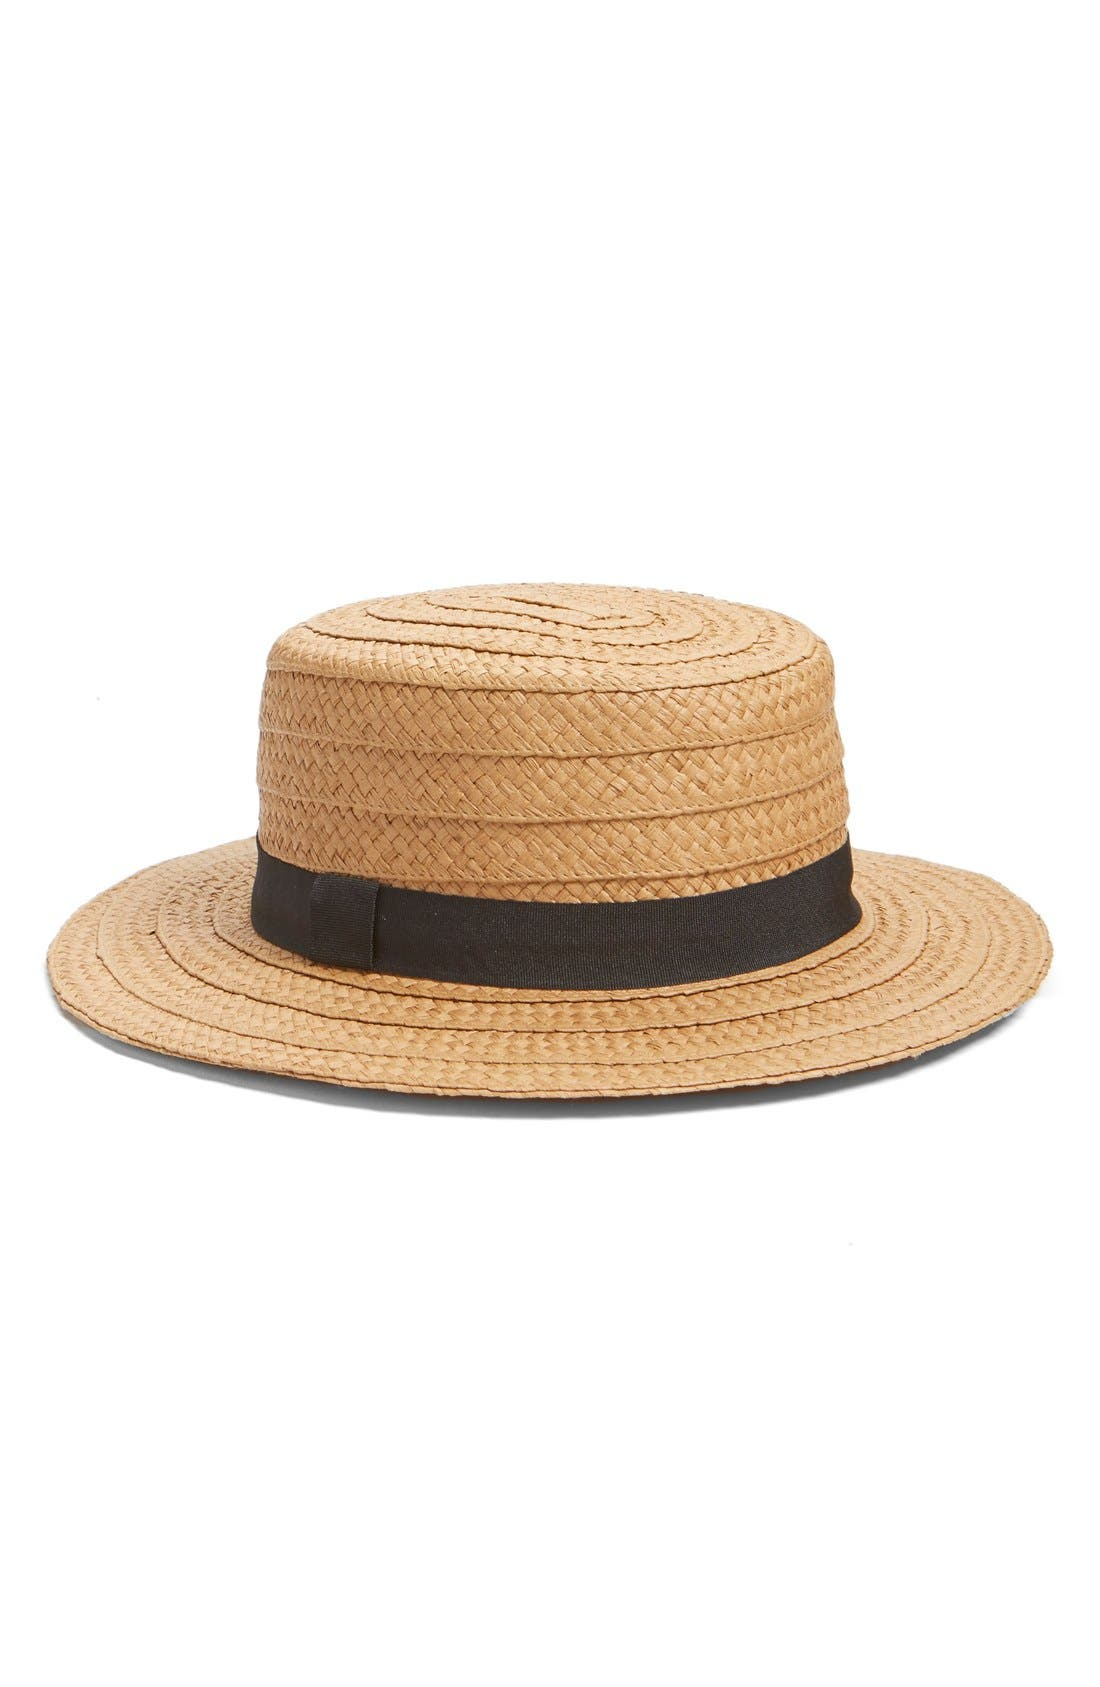 Straw Boater Hat,                         Main,                         color, Natural